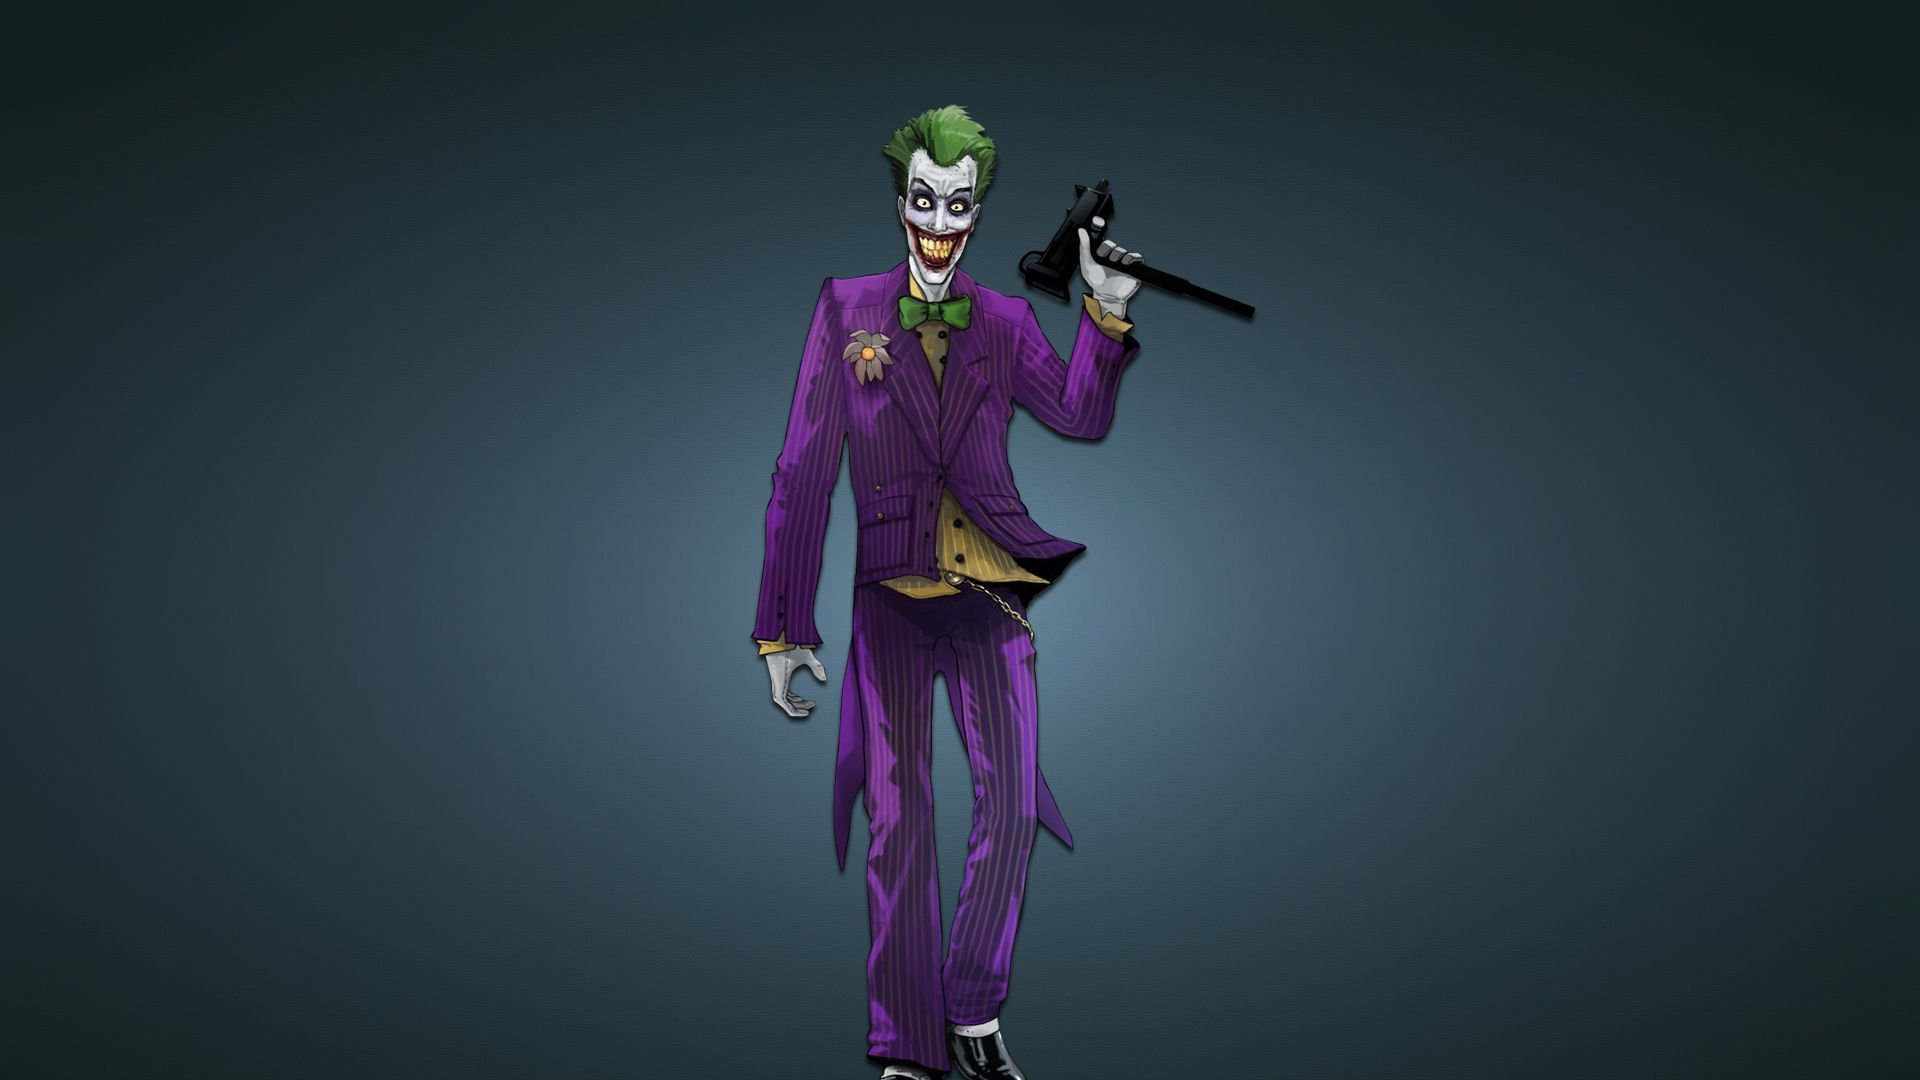 Top Wallpaper Mac Joker - a8862e6683487ae14c69c53ce6d2943e  Collection_75633.jpg